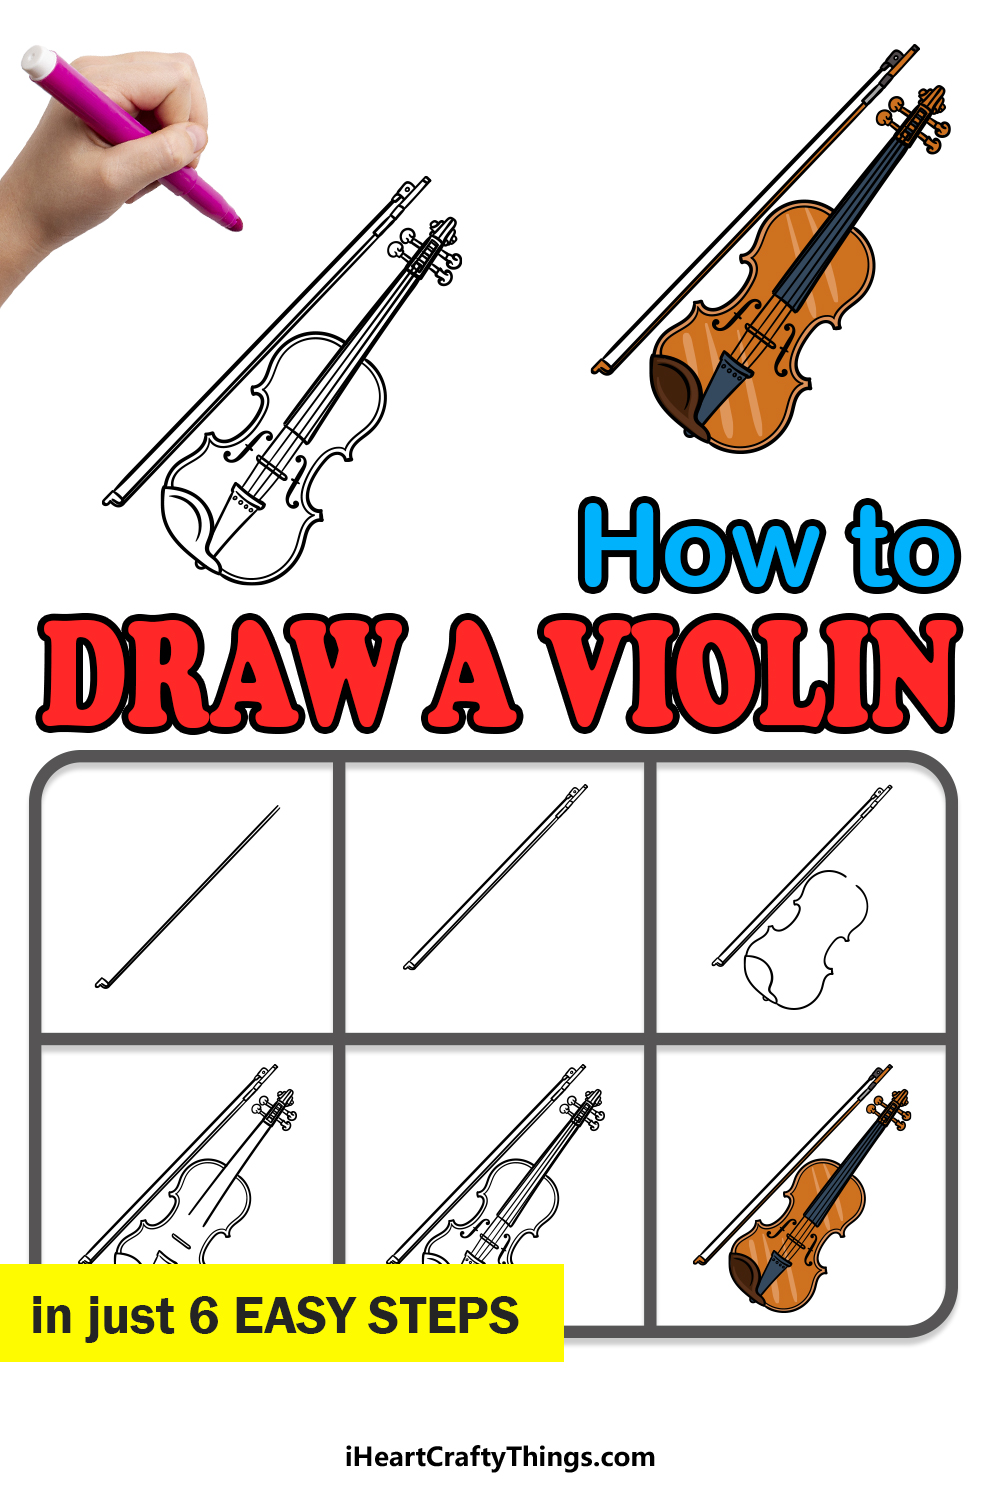 how to draw a violin in 6 easy steps